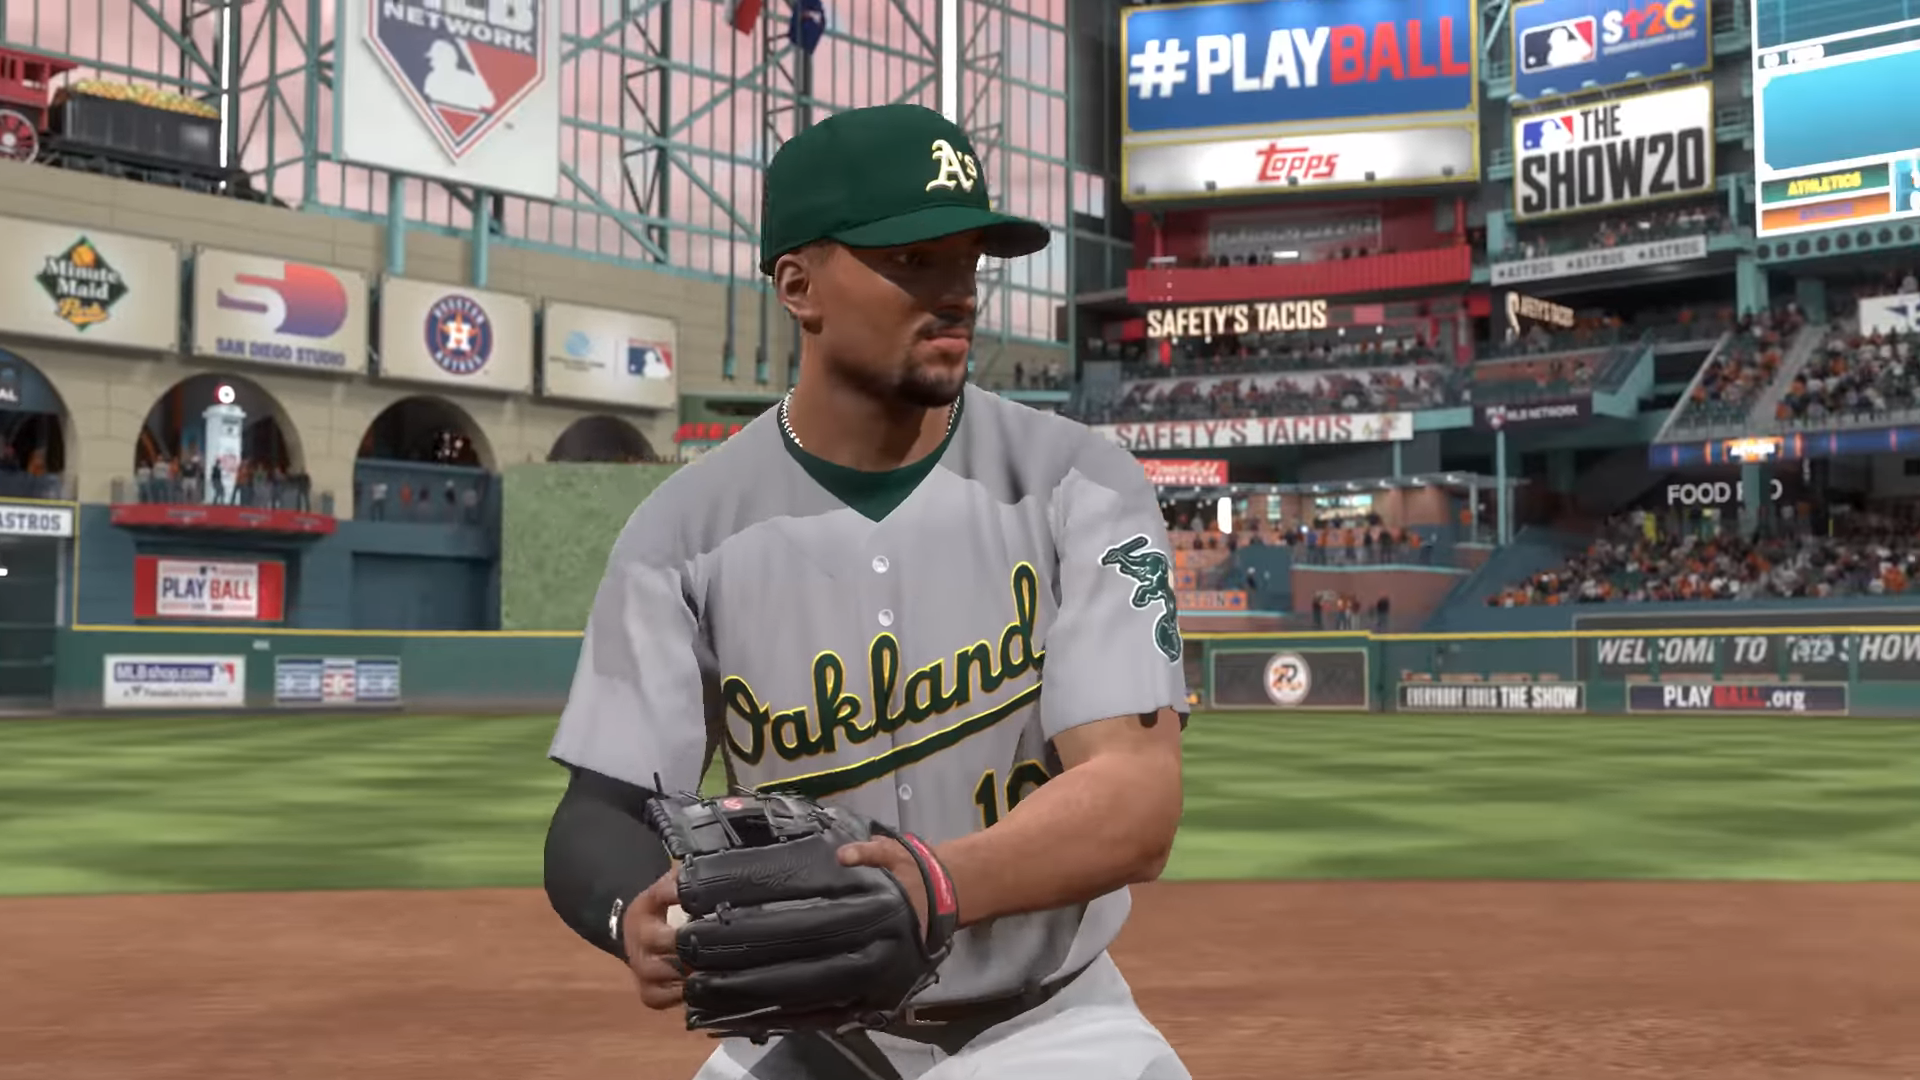 Mlb The Show 20 First Road To The Show Gameplay Released Sports Gamers Online In 2020 Mlb The Show Mlb Most Popular Games